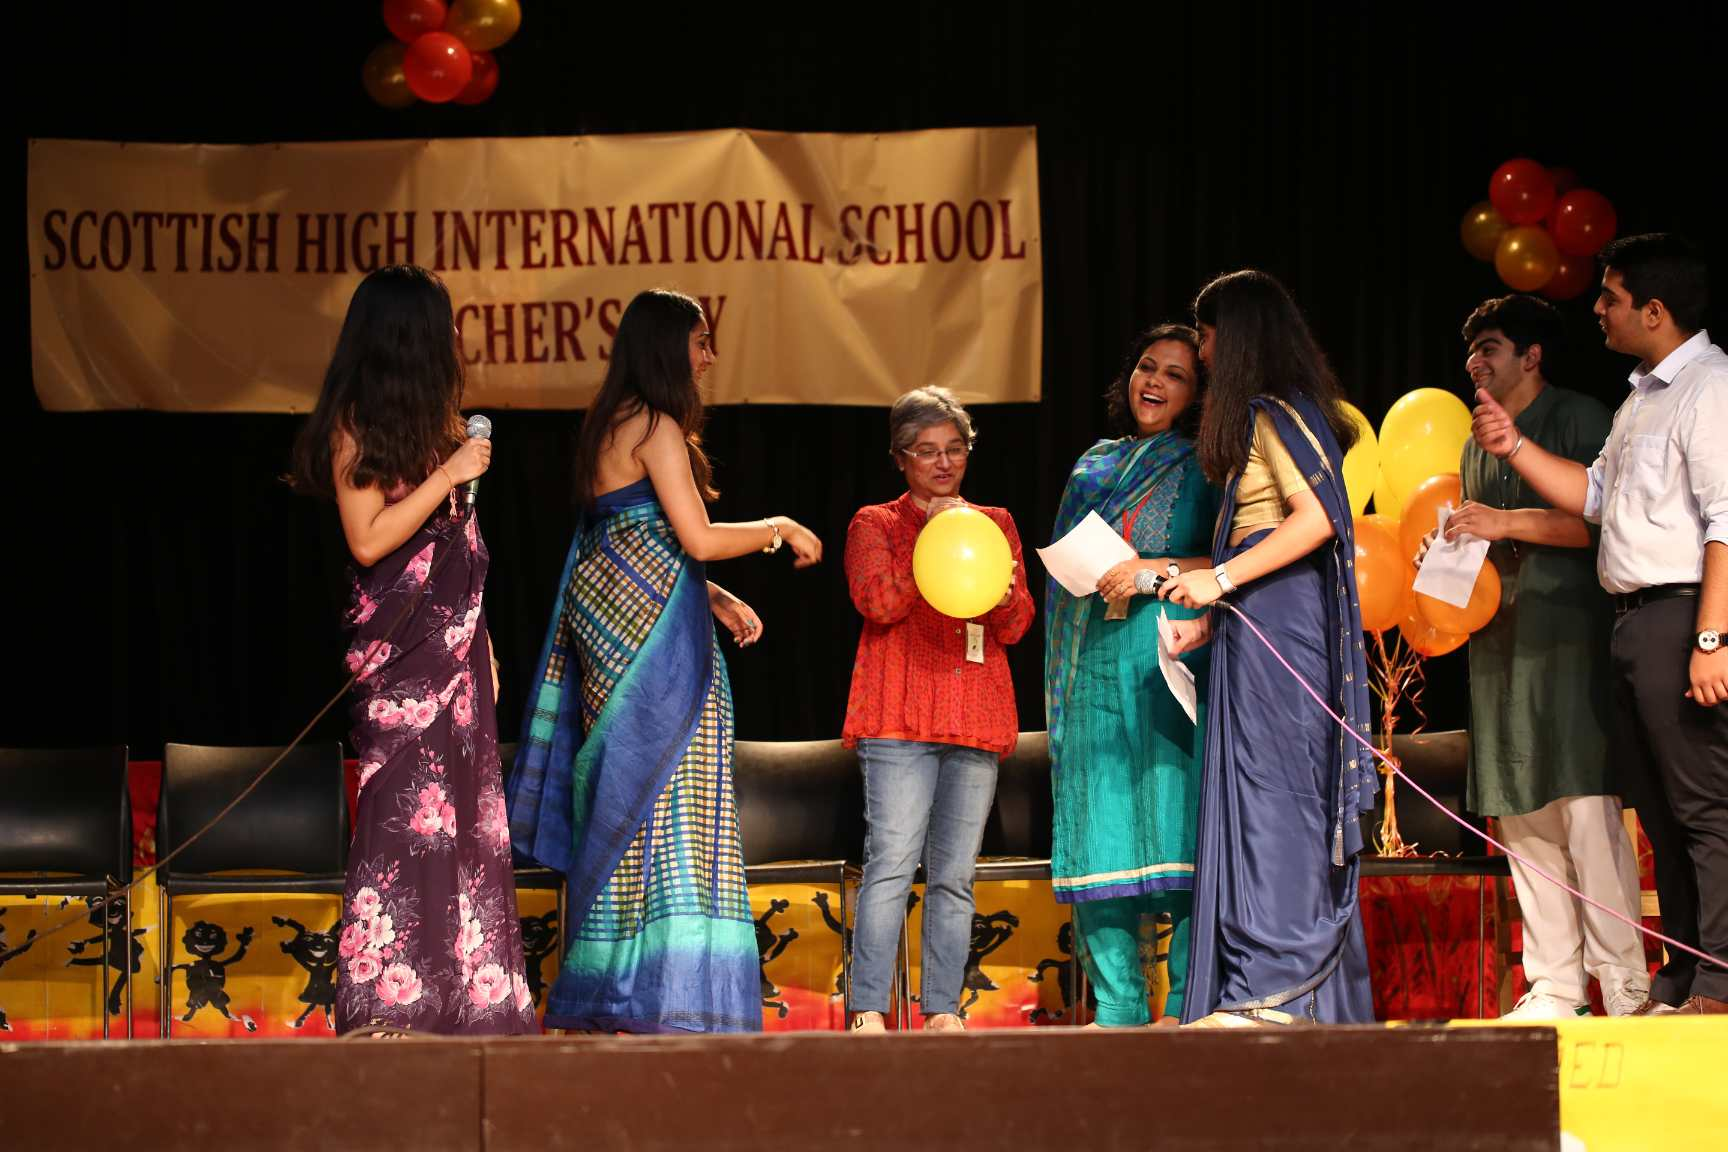 Teachers Day celebrations 2018 - Scottish High International School